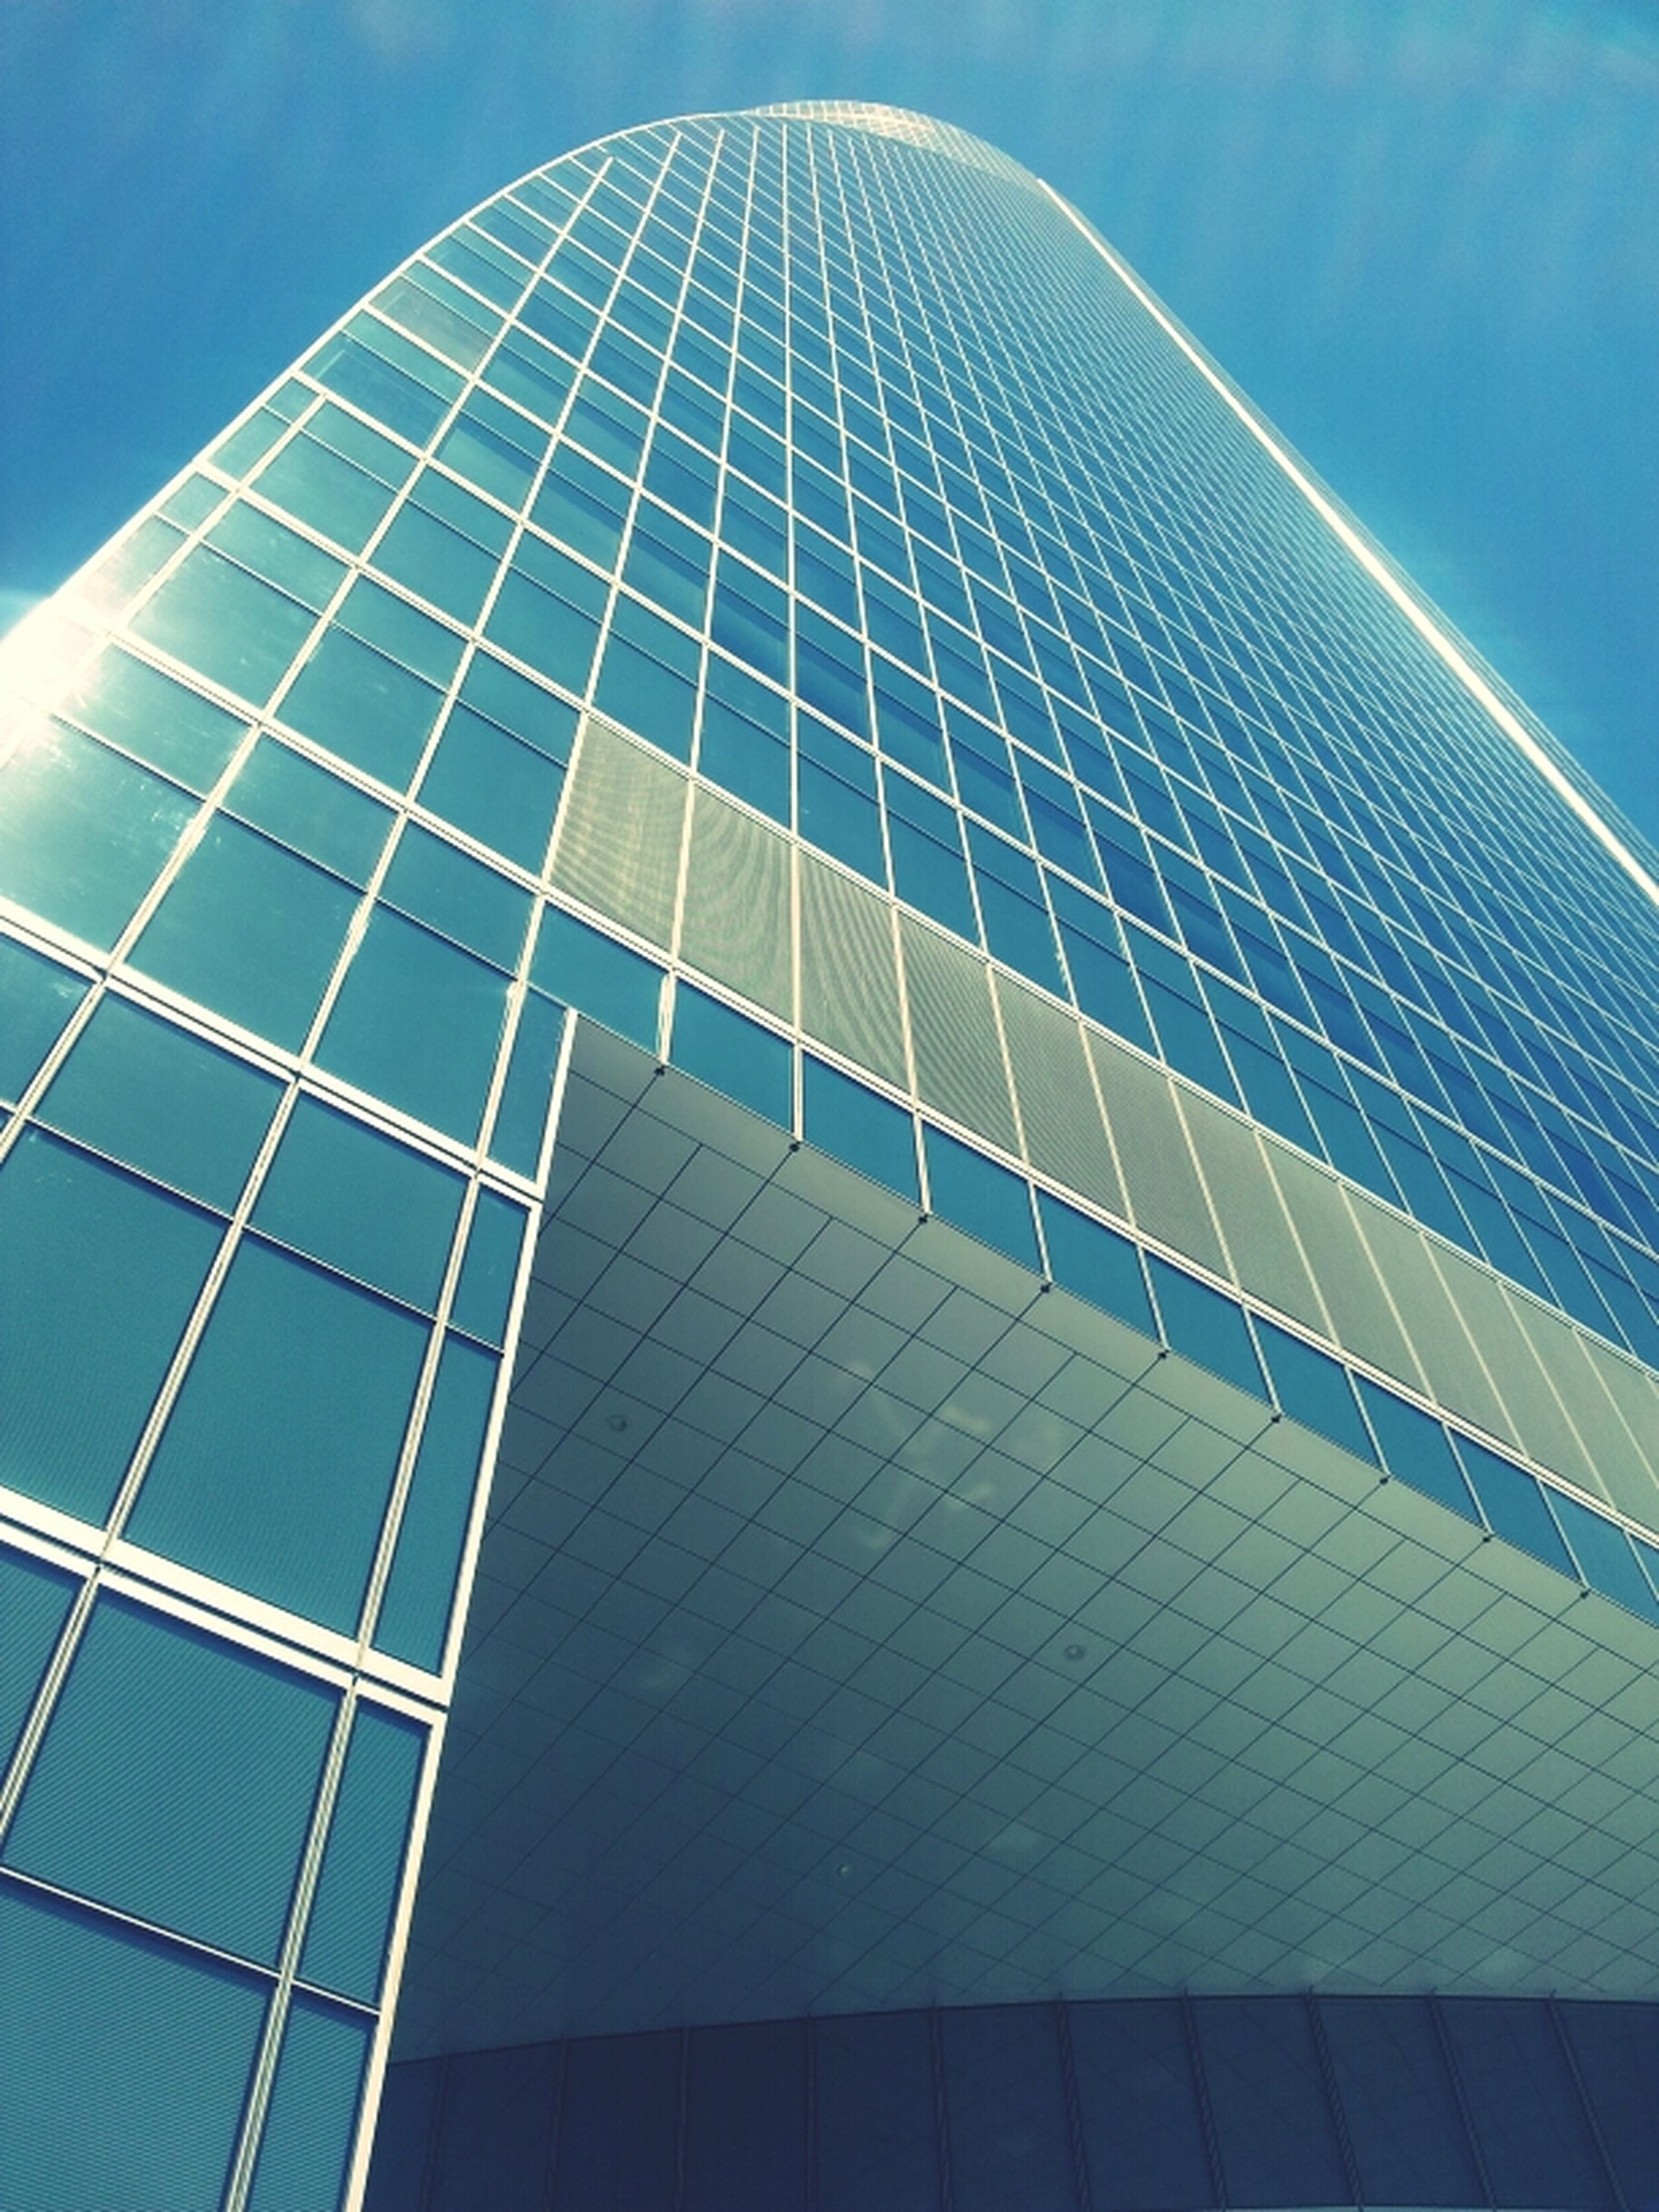 low angle view, architecture, built structure, modern, building exterior, office building, blue, skyscraper, tall - high, glass - material, sky, city, tower, reflection, pattern, building, day, architectural feature, outdoors, no people